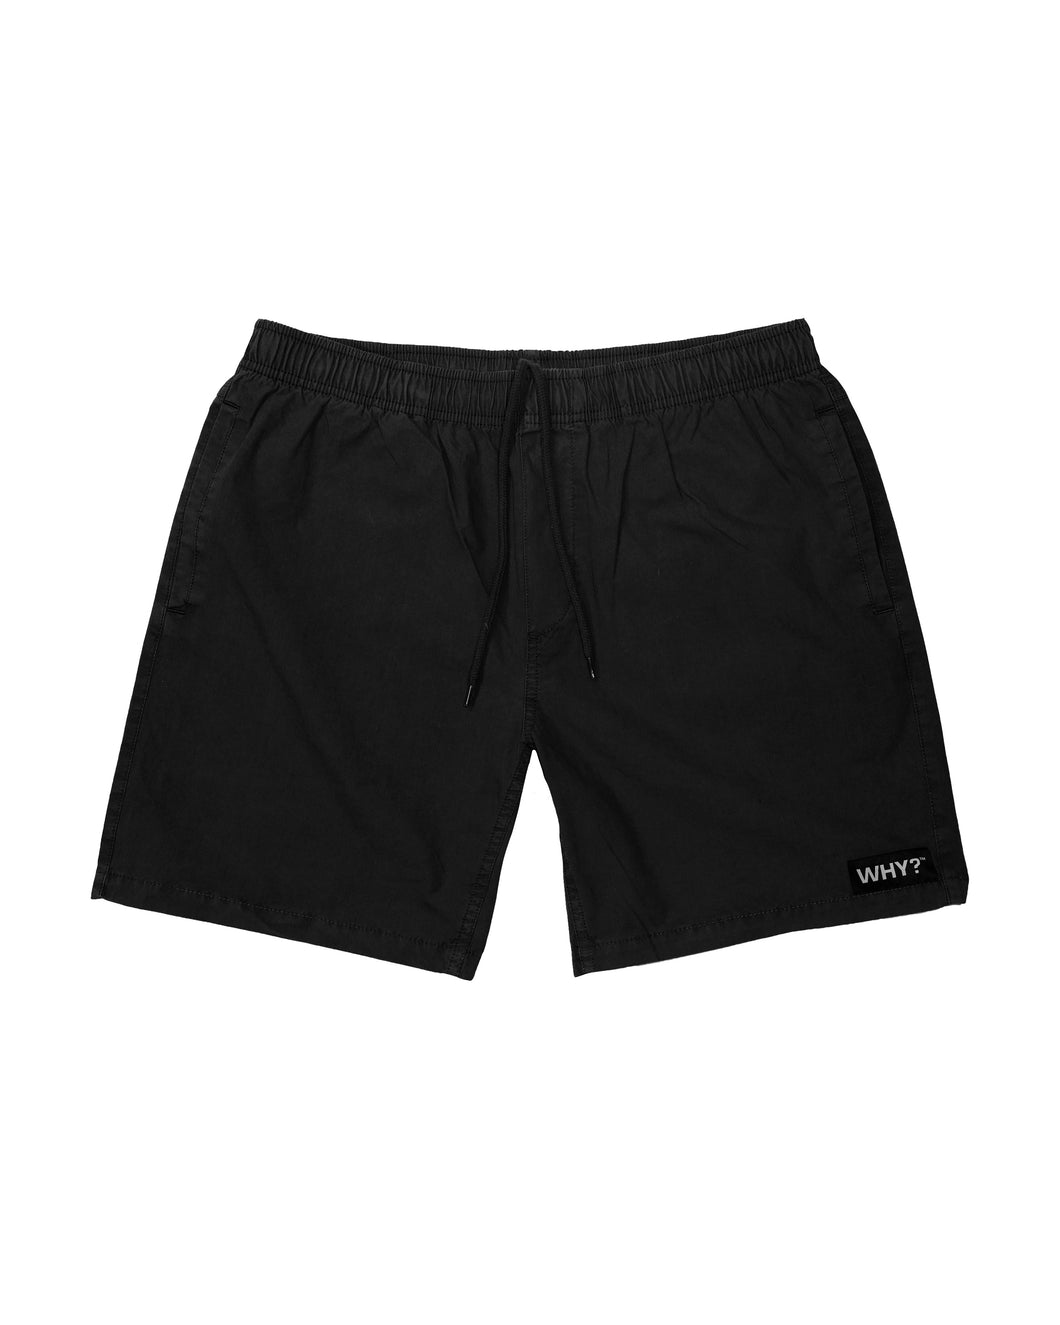 Logo Shorts (Black)